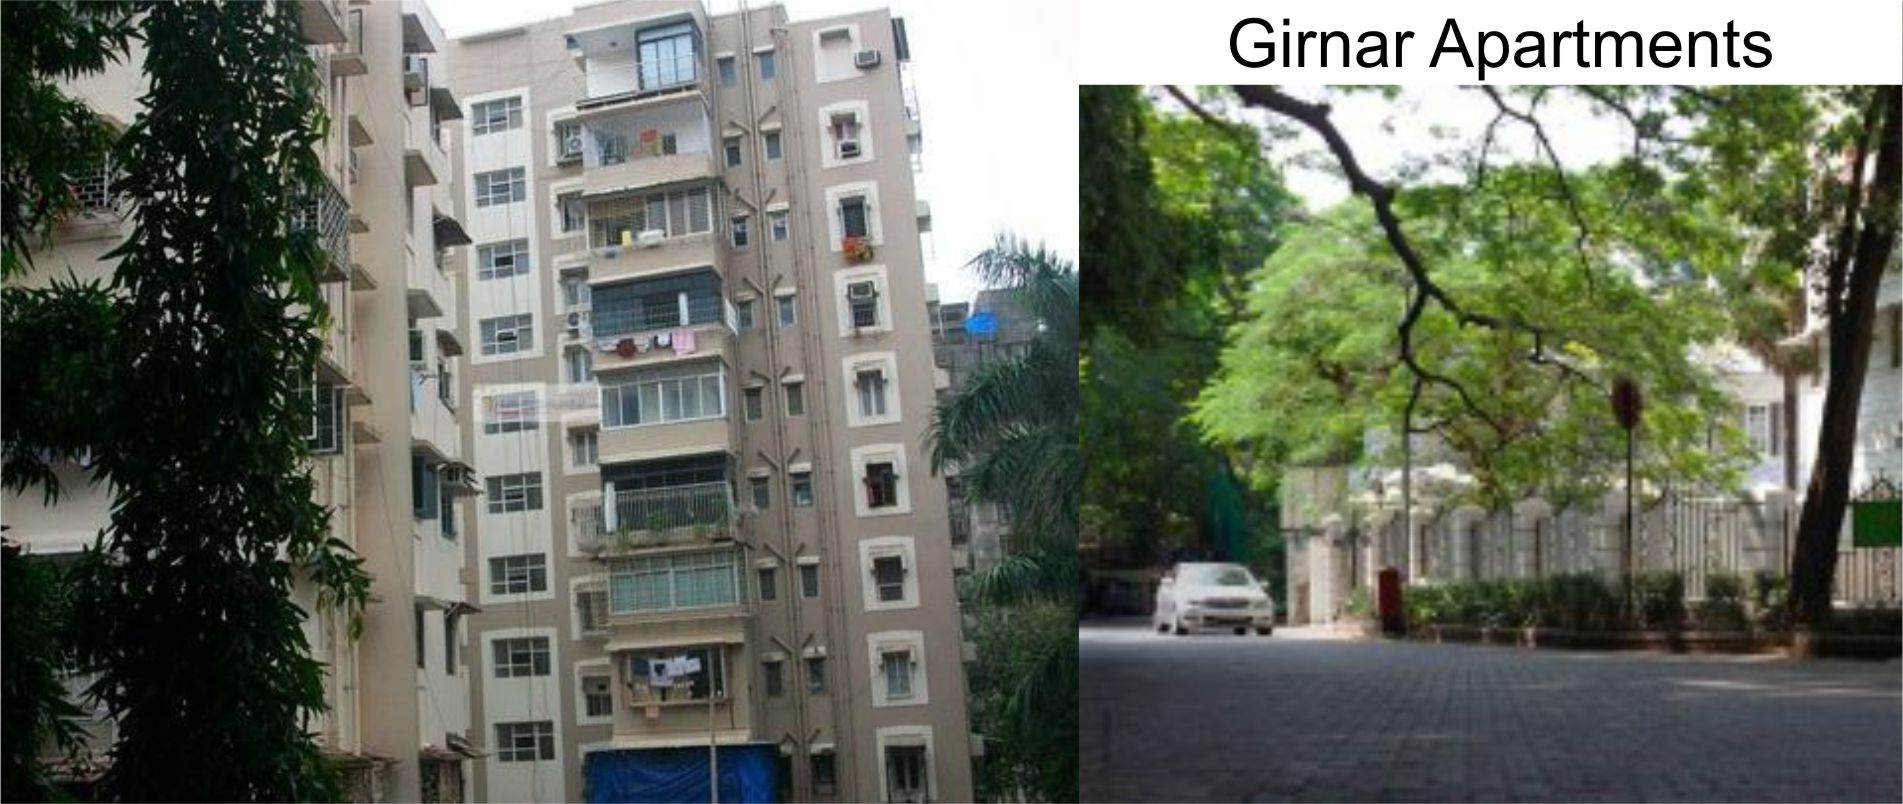 Girnar Apartments - Bandra West